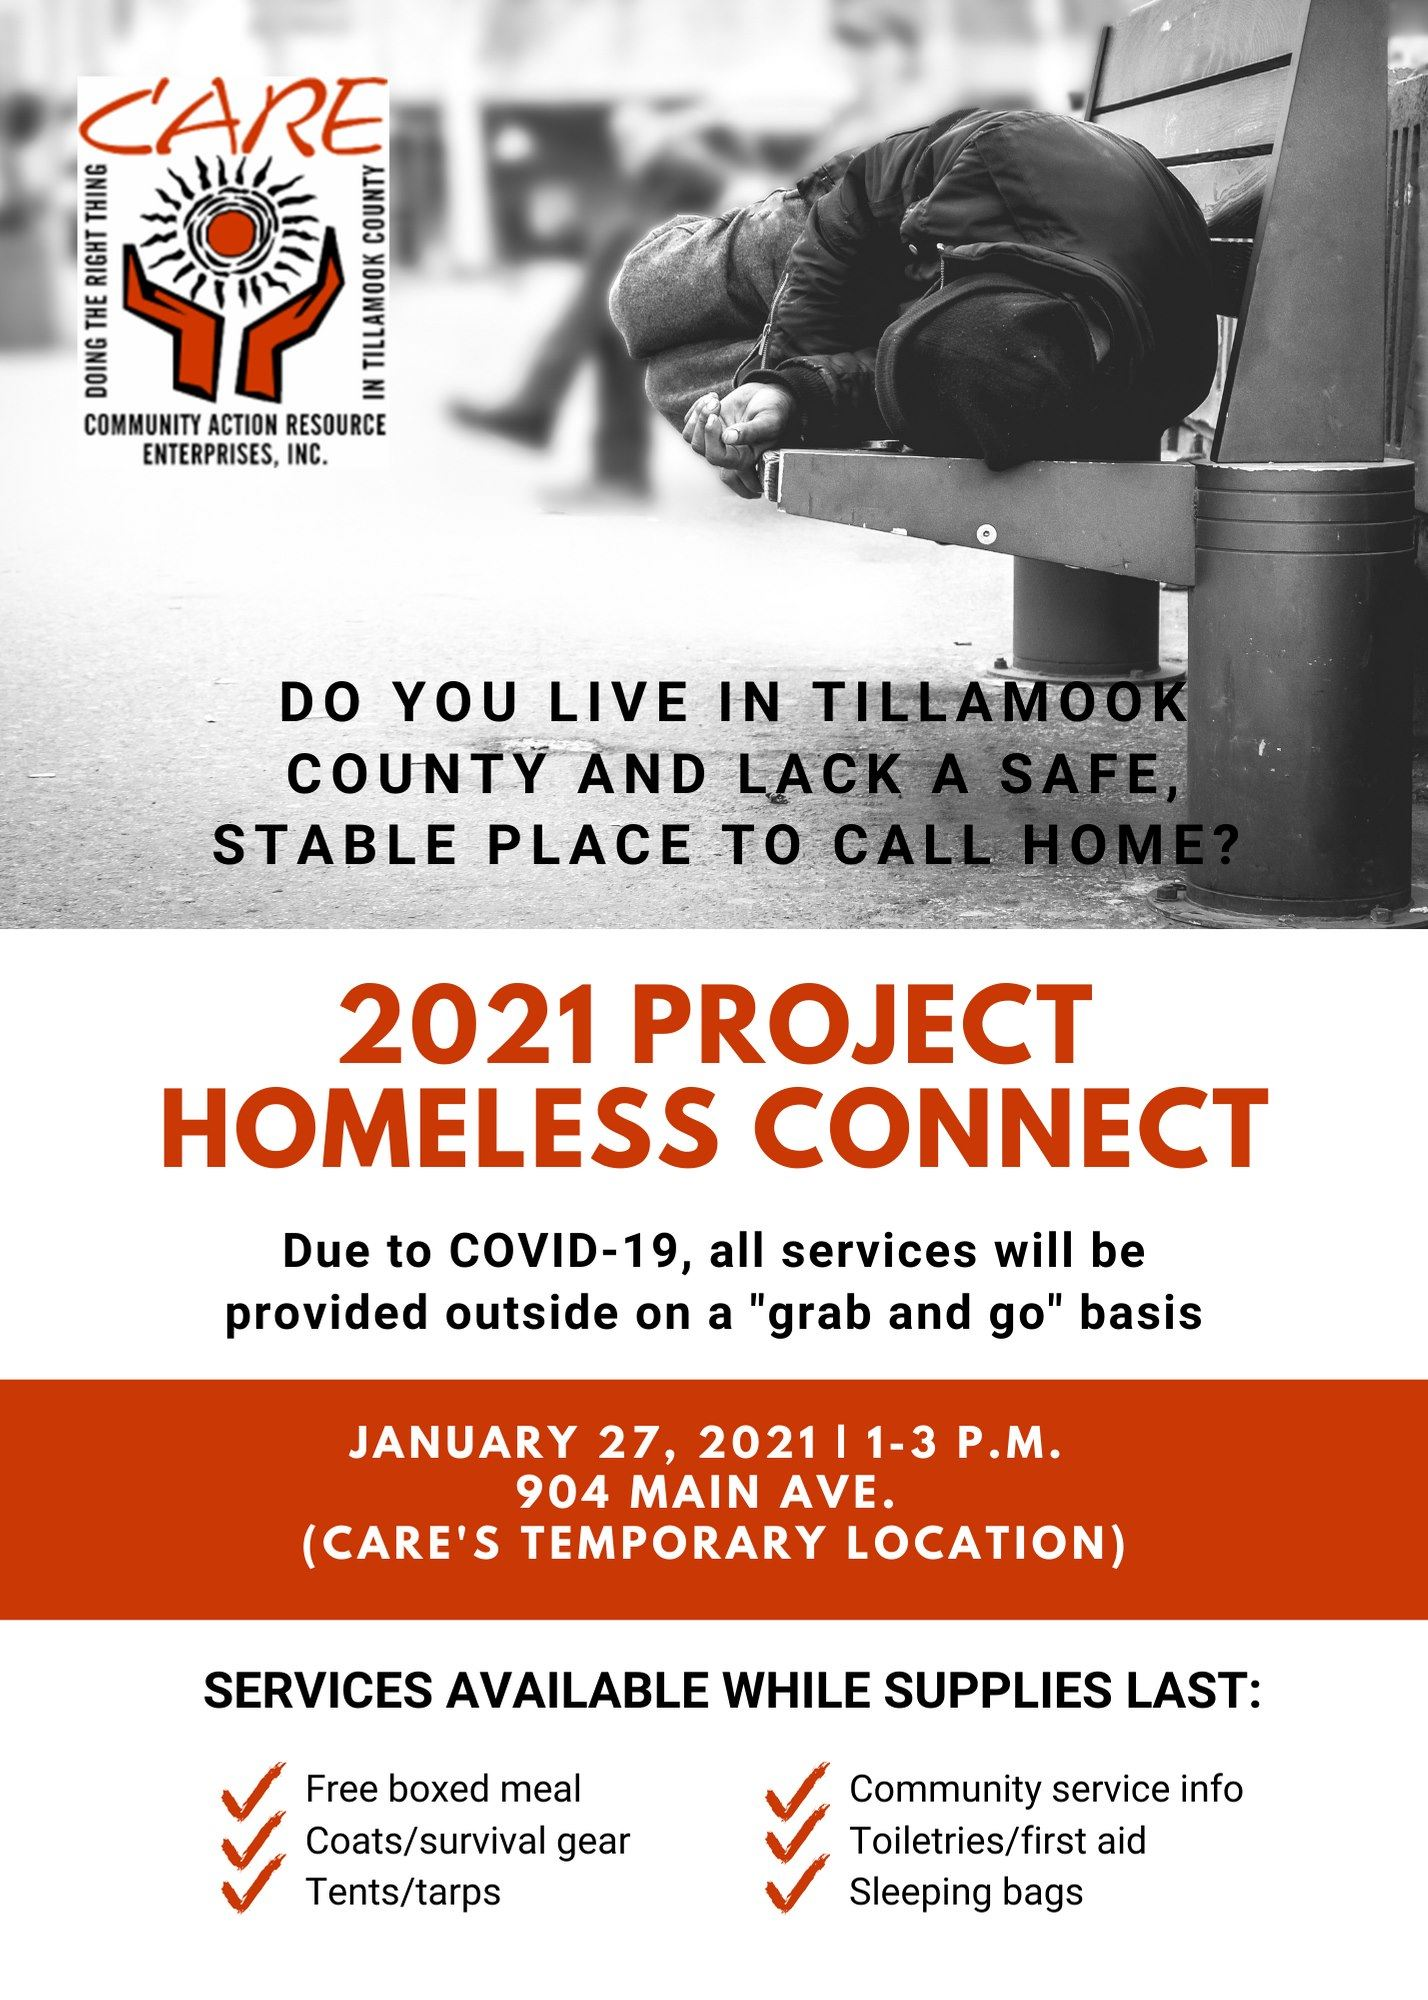 Care homeless connect